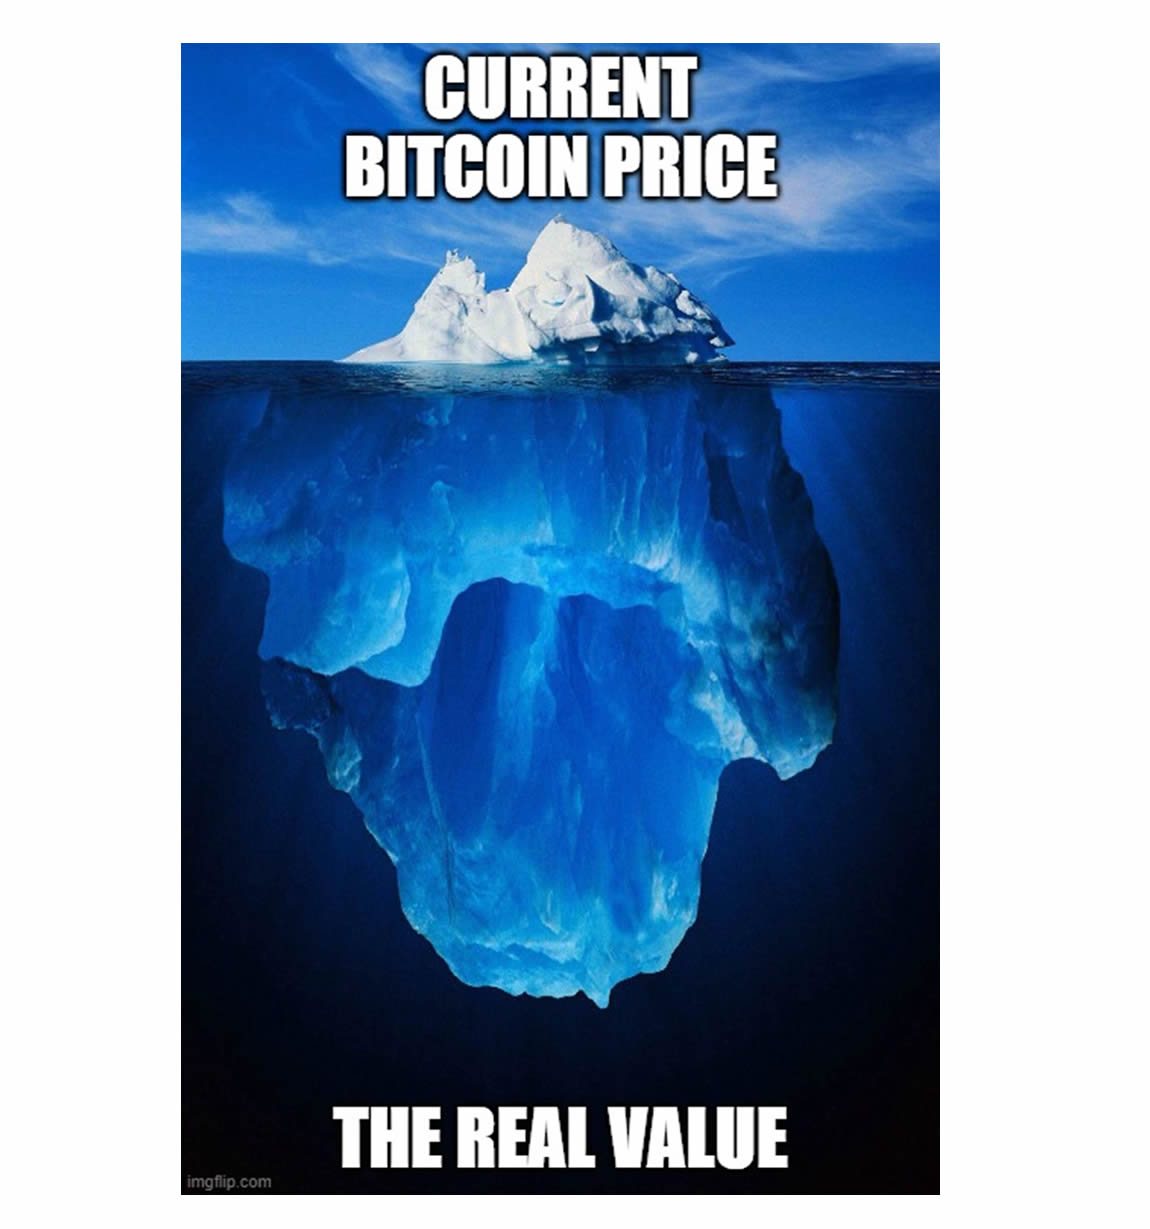 neutral-atm-bitcoin-real-value-a